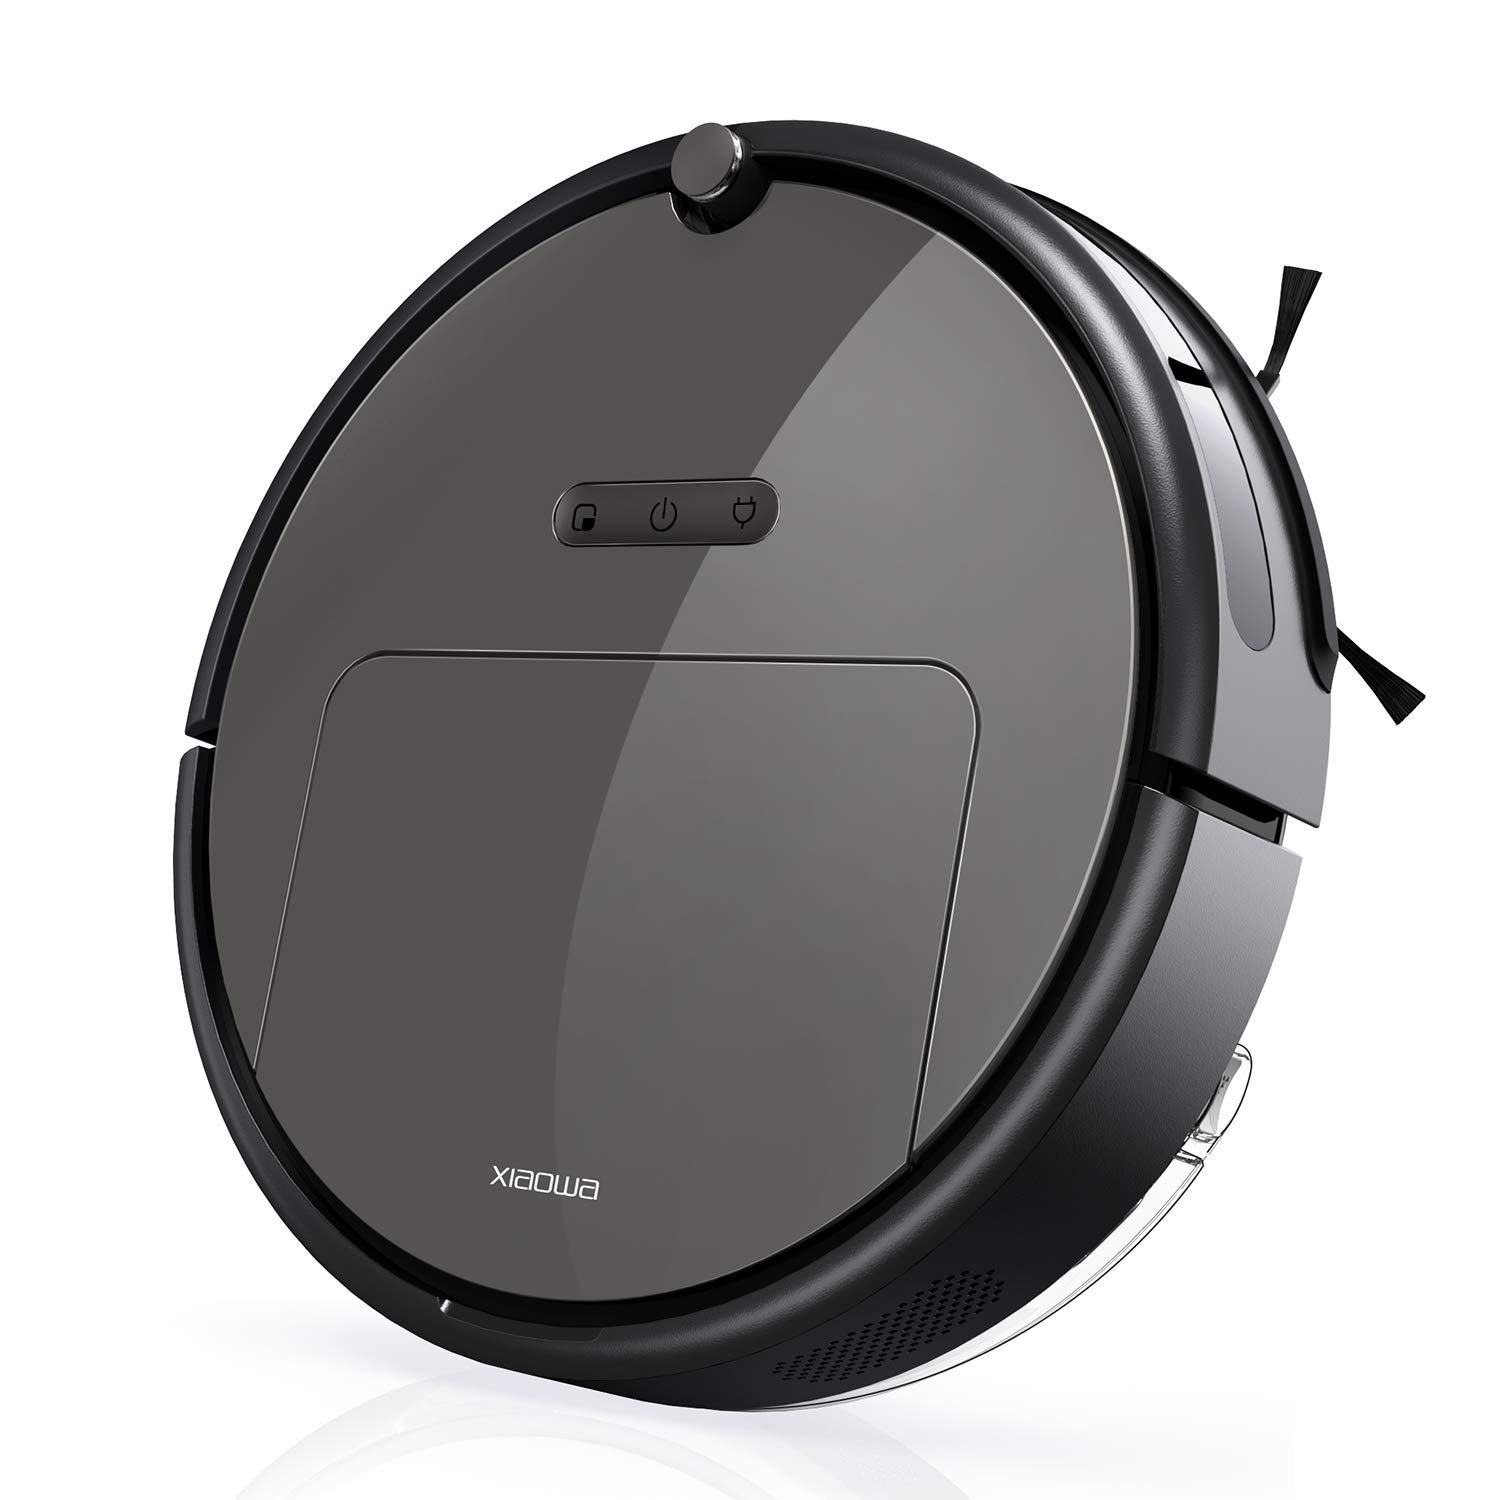 Roborock E35 Robot Vacuum and Mop: 2000Pa Strong Suction, App Control, and Scheduling, Route Planning, Handles Hard Floors and Carpets Ideal for Homes with Pets by Roborock